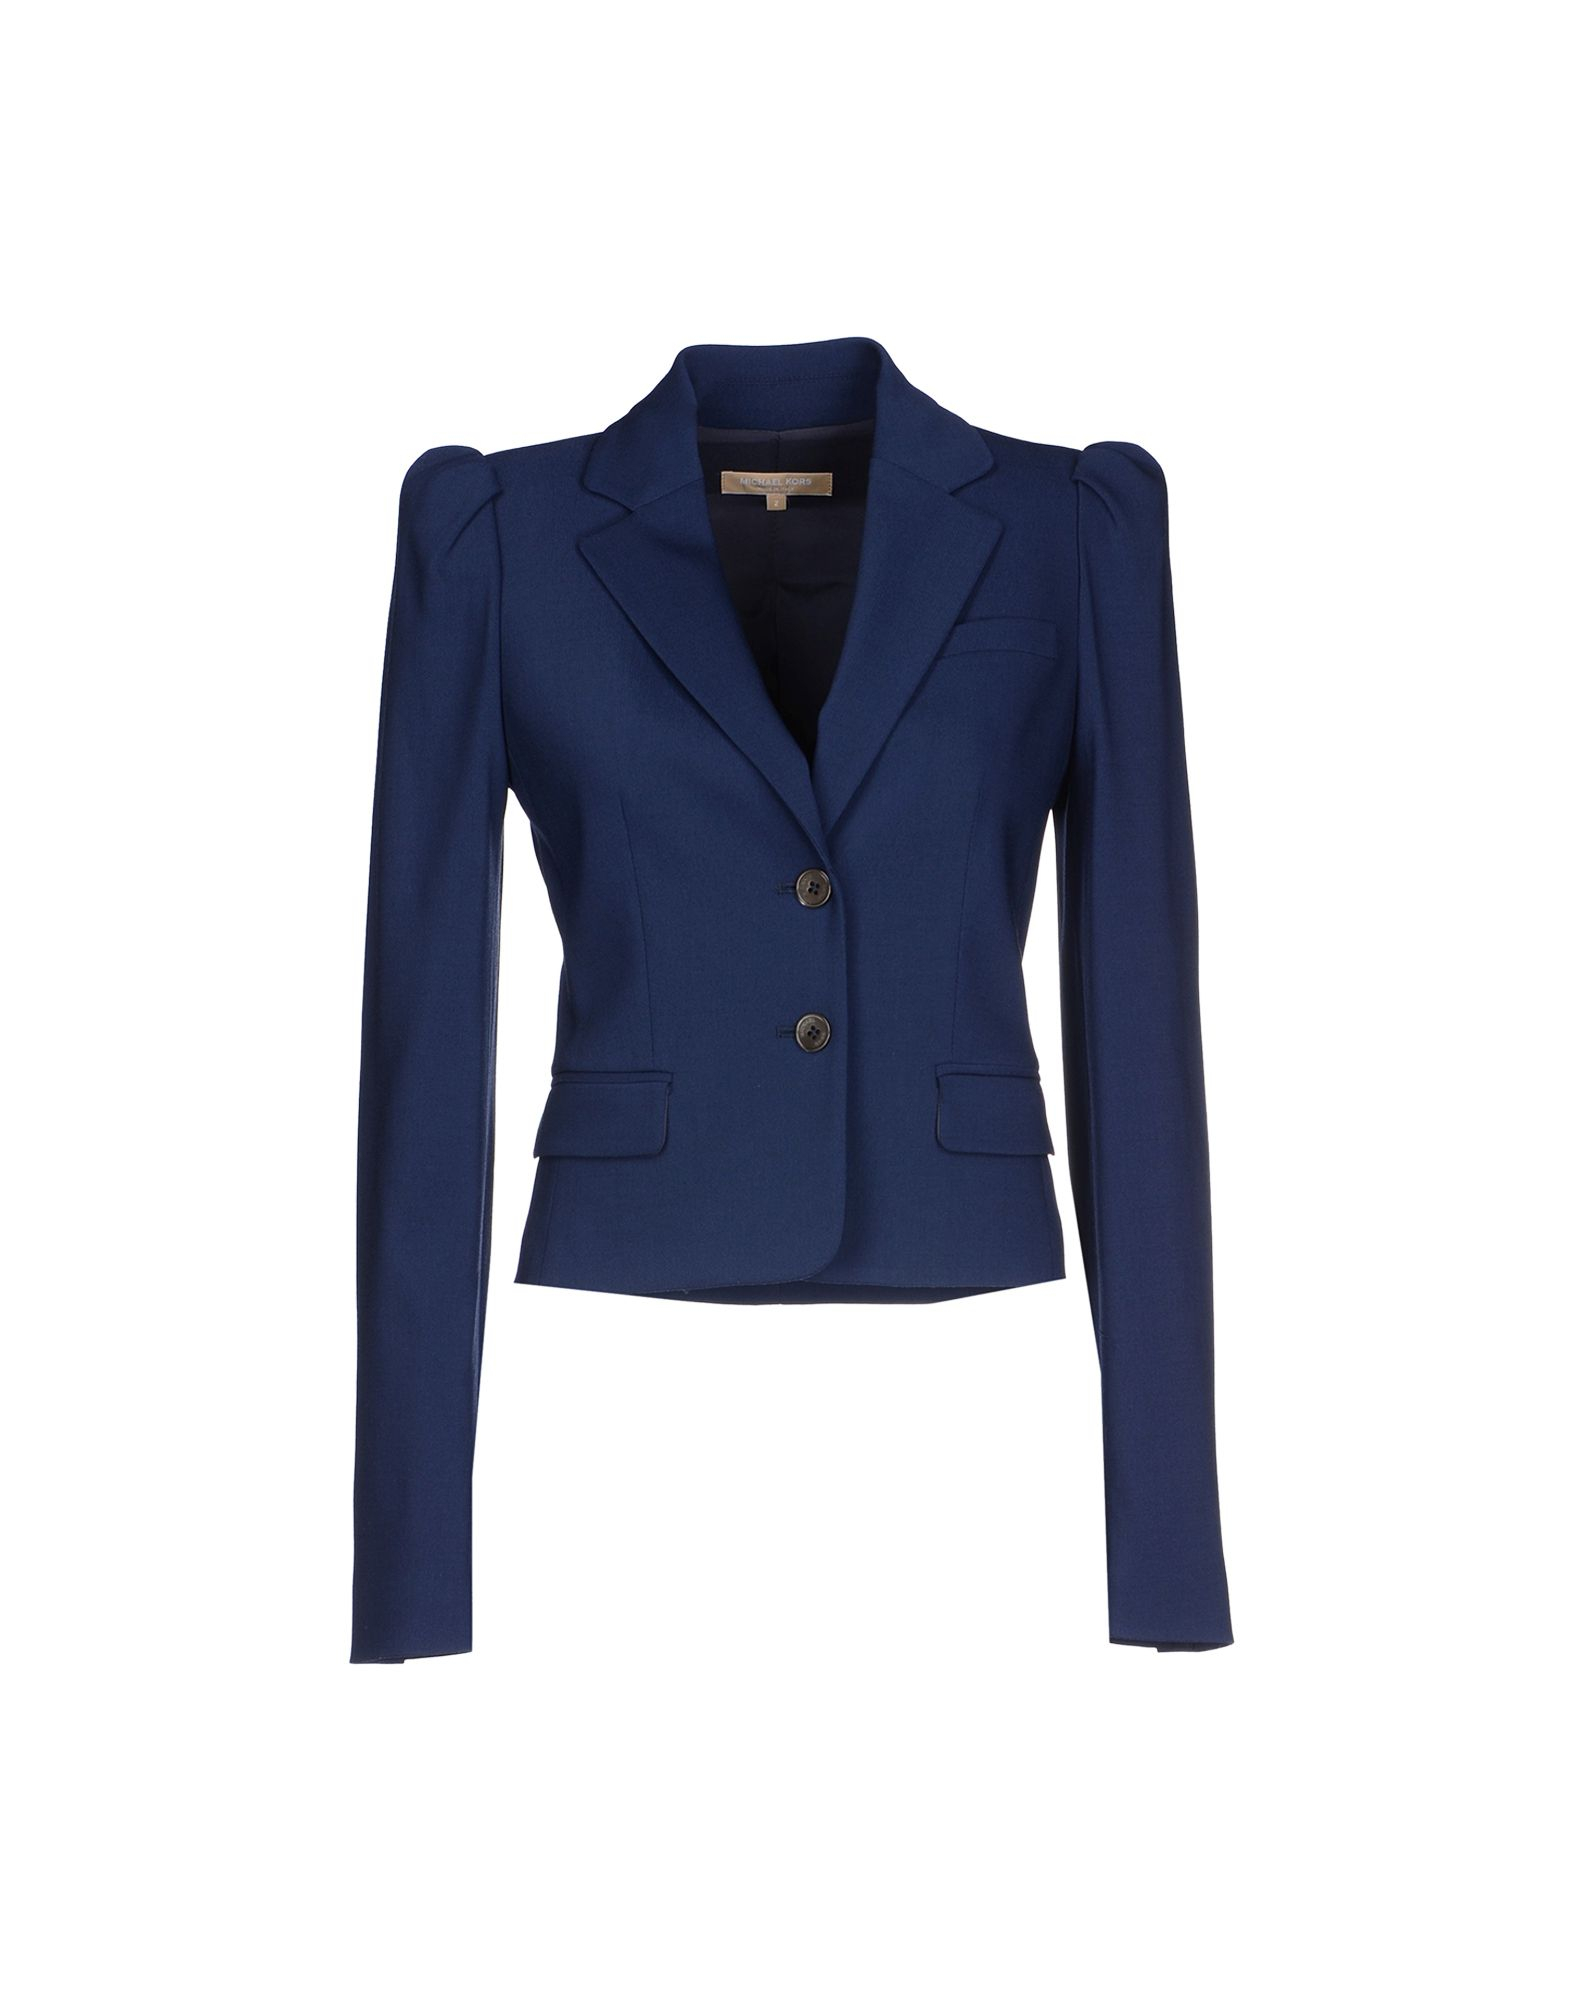 michael kors blazer in blue dark blue lyst. Black Bedroom Furniture Sets. Home Design Ideas